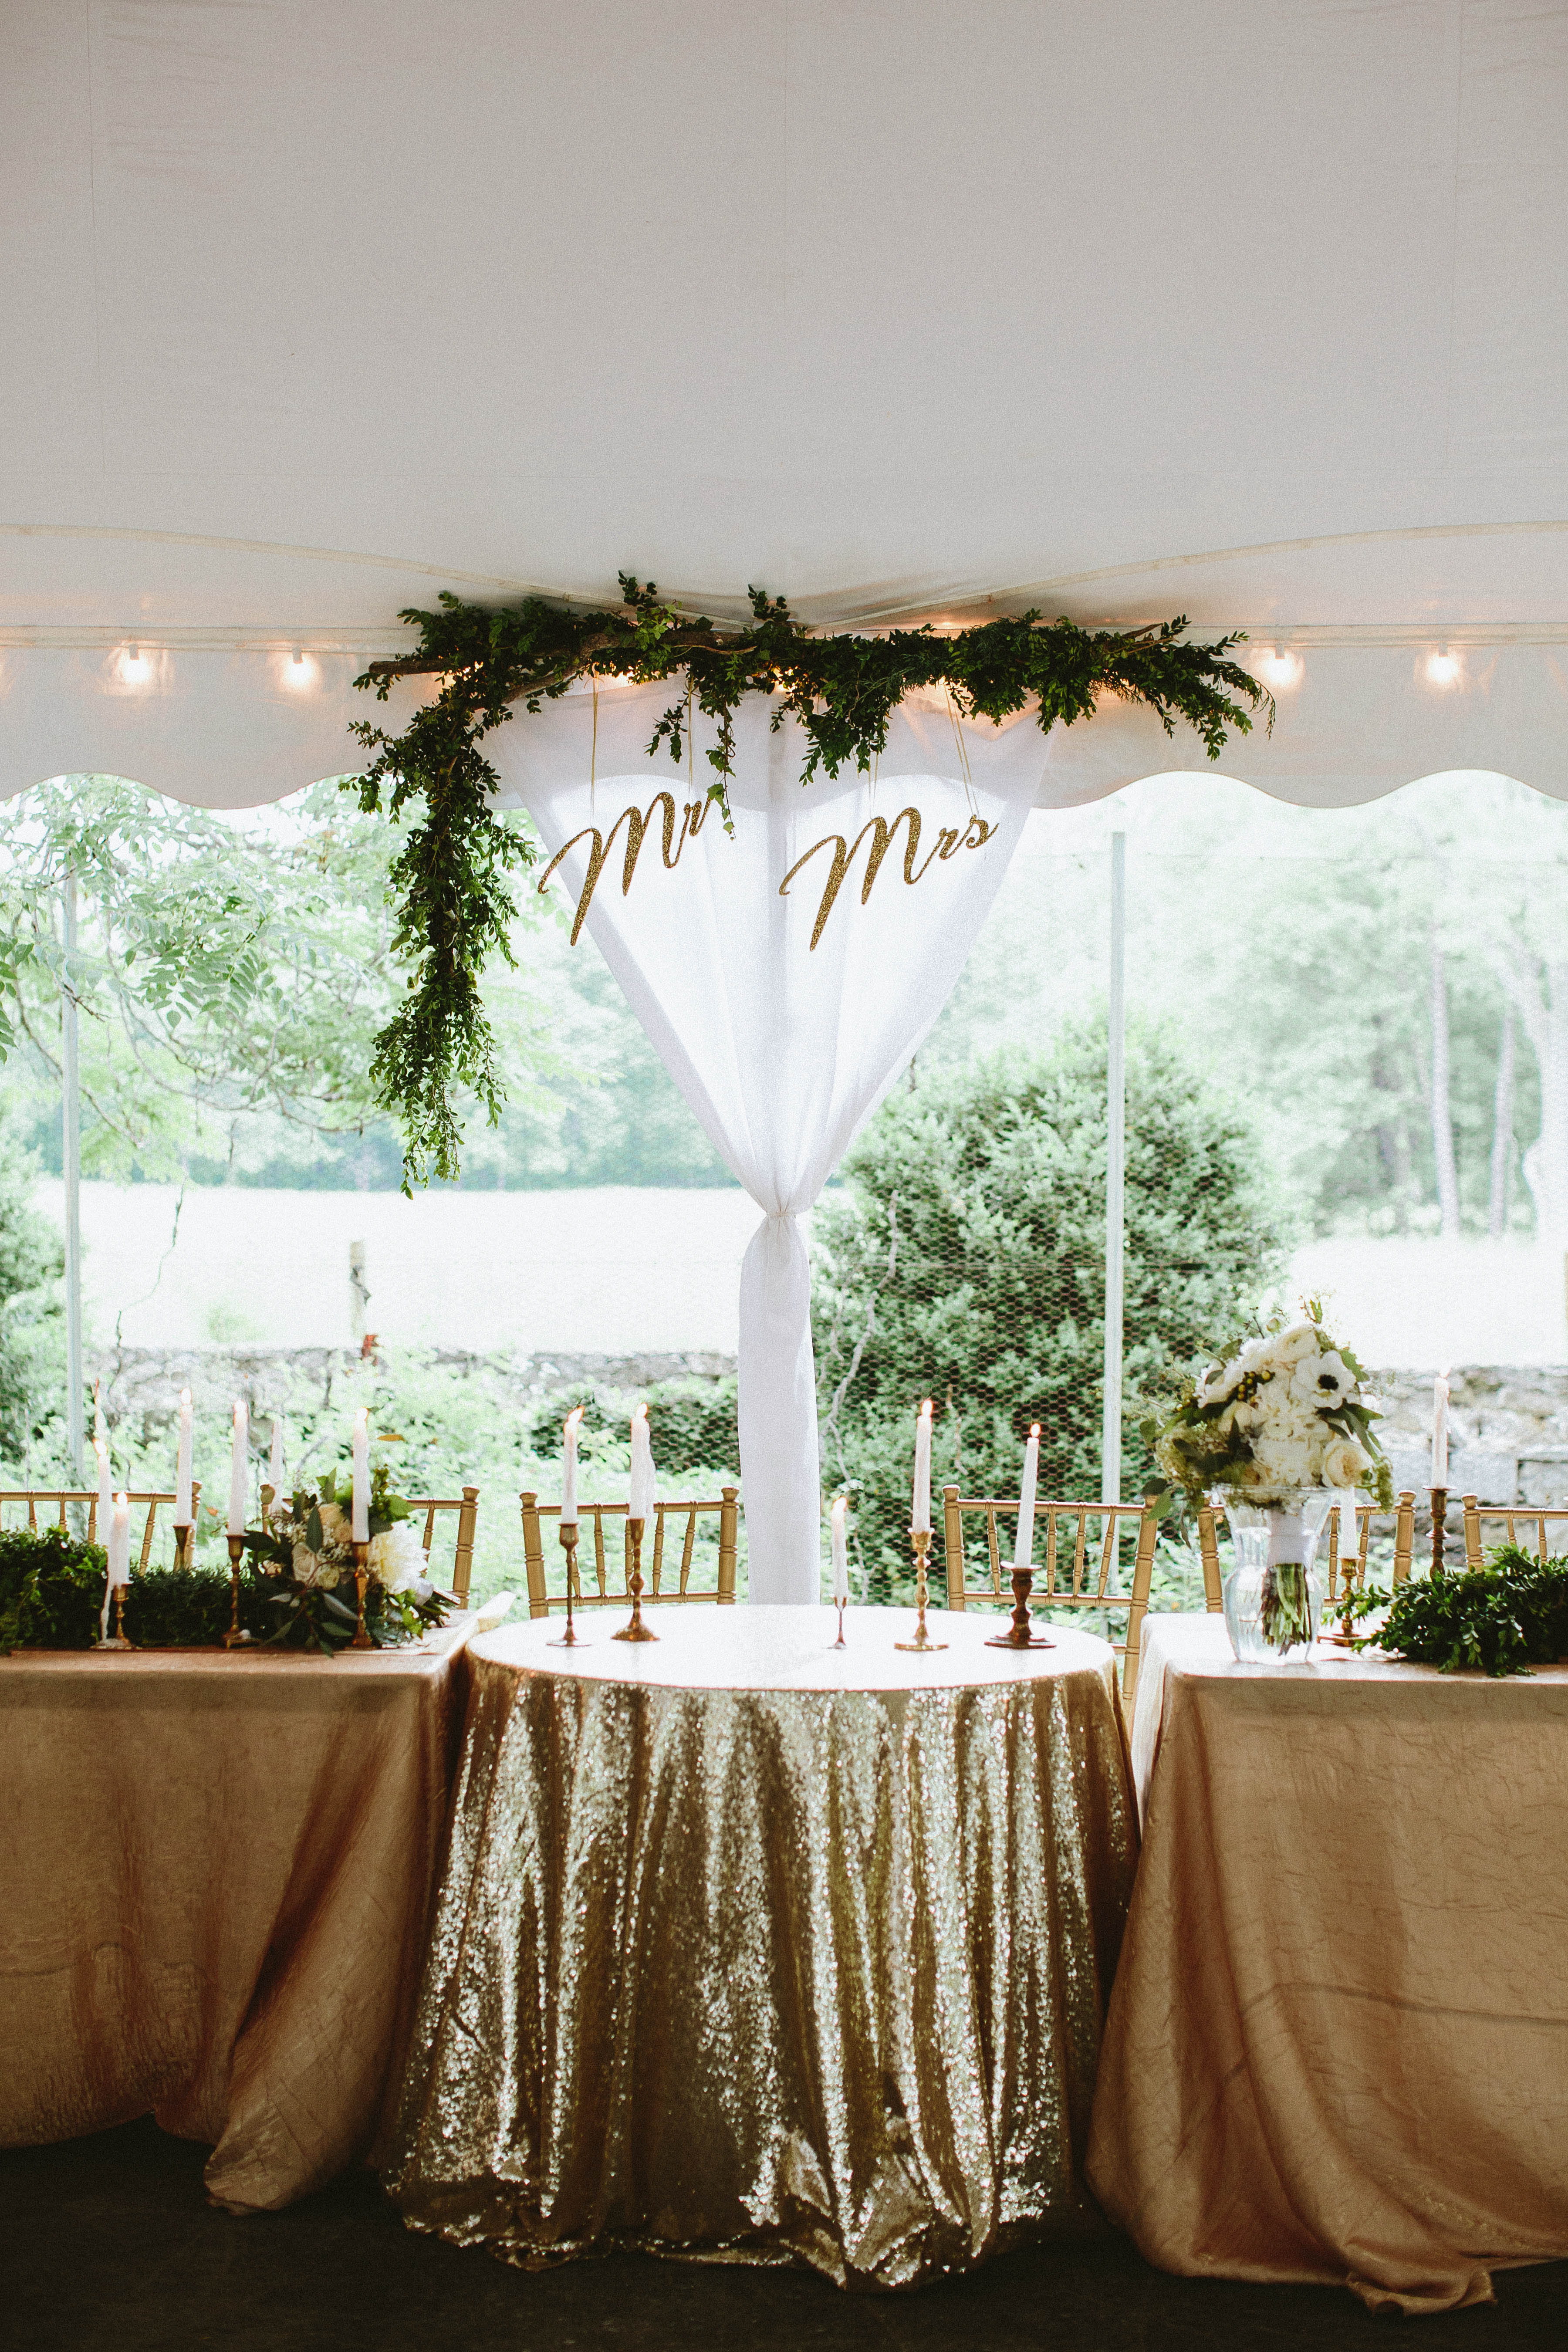 mr and mrs suspended cursive signs above sweetheart table